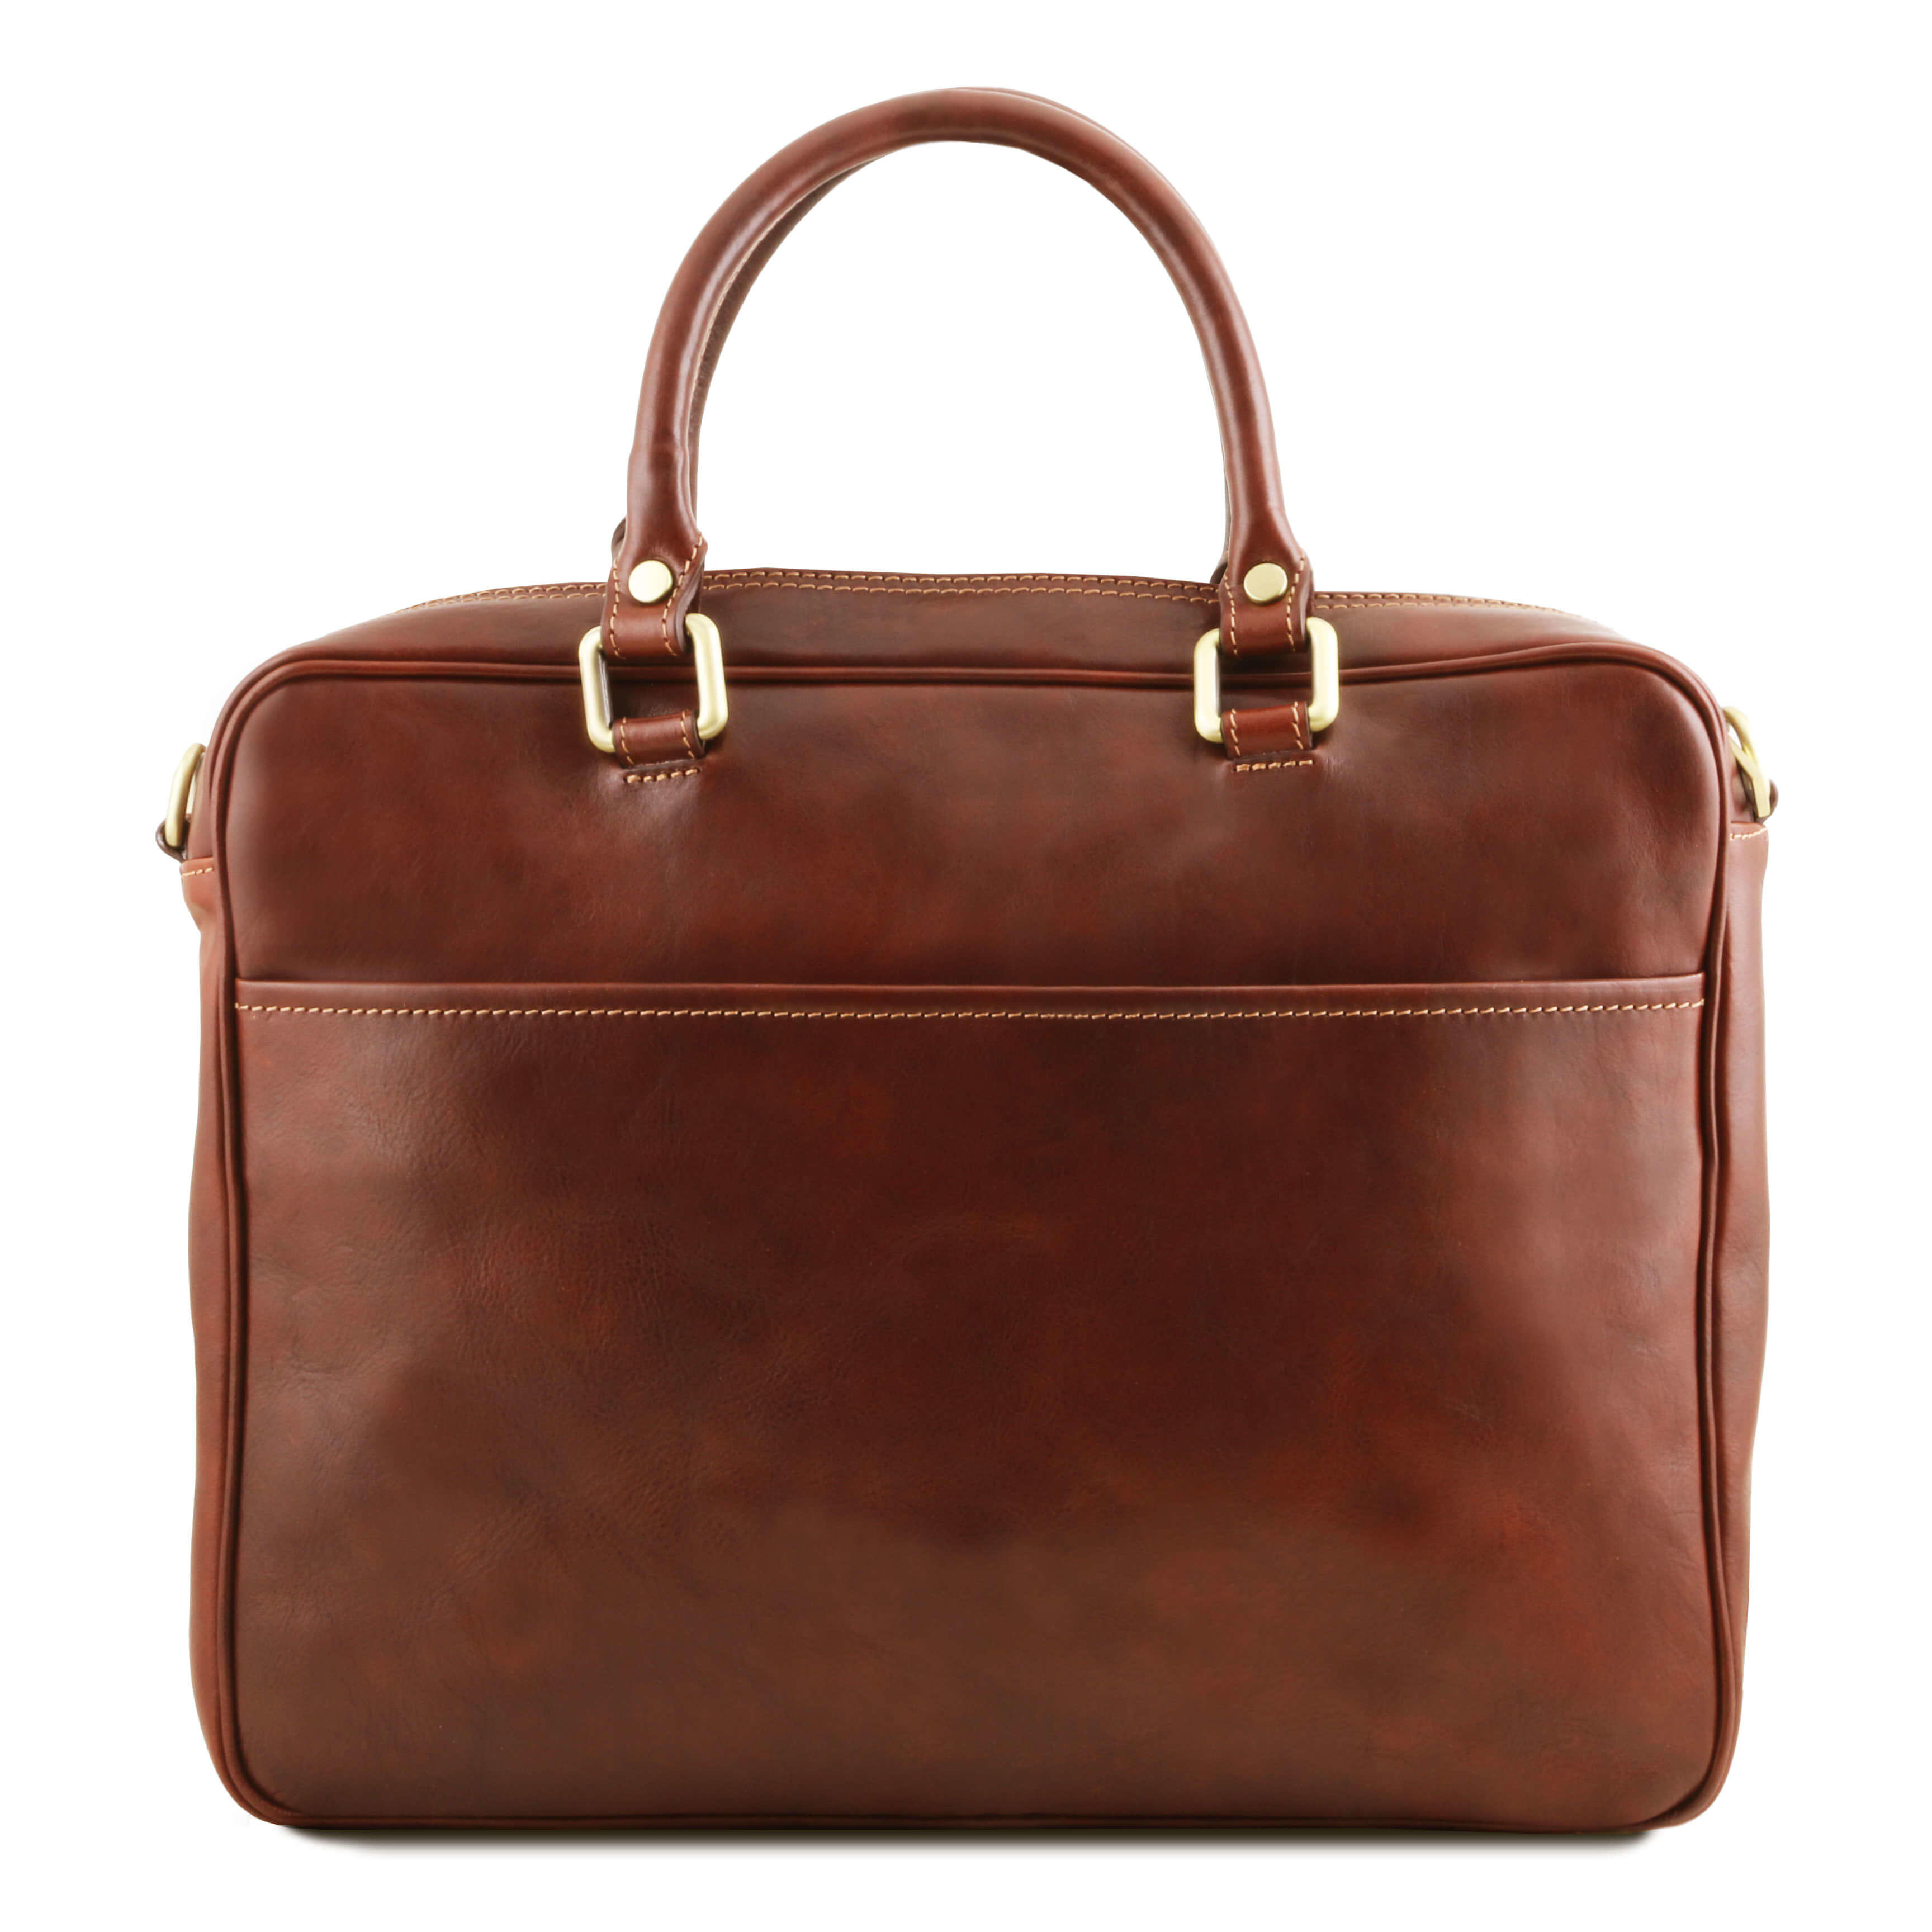 PISA Leather Laptop Case With Front Pocket TL141660 By Tuscany Leather